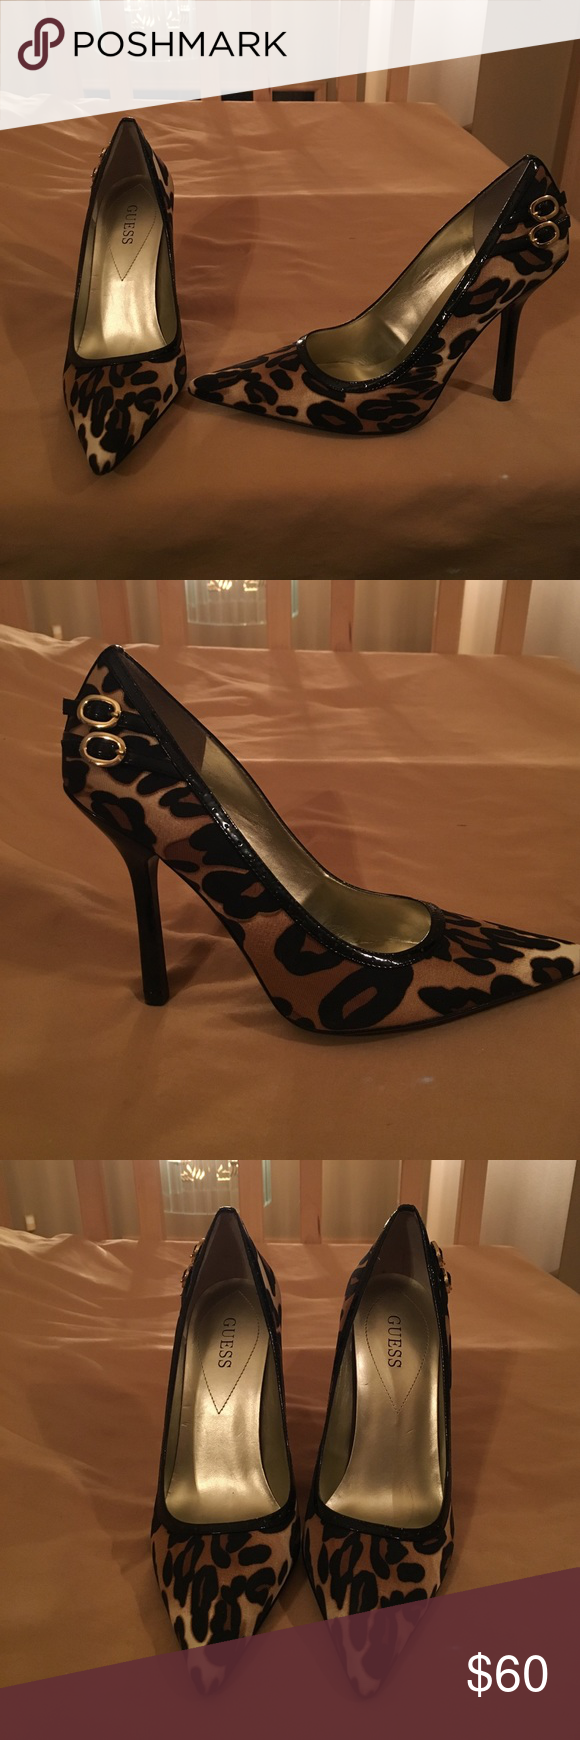 BRAND NEW Guess Lucita leopard pumps in size 9 NWT